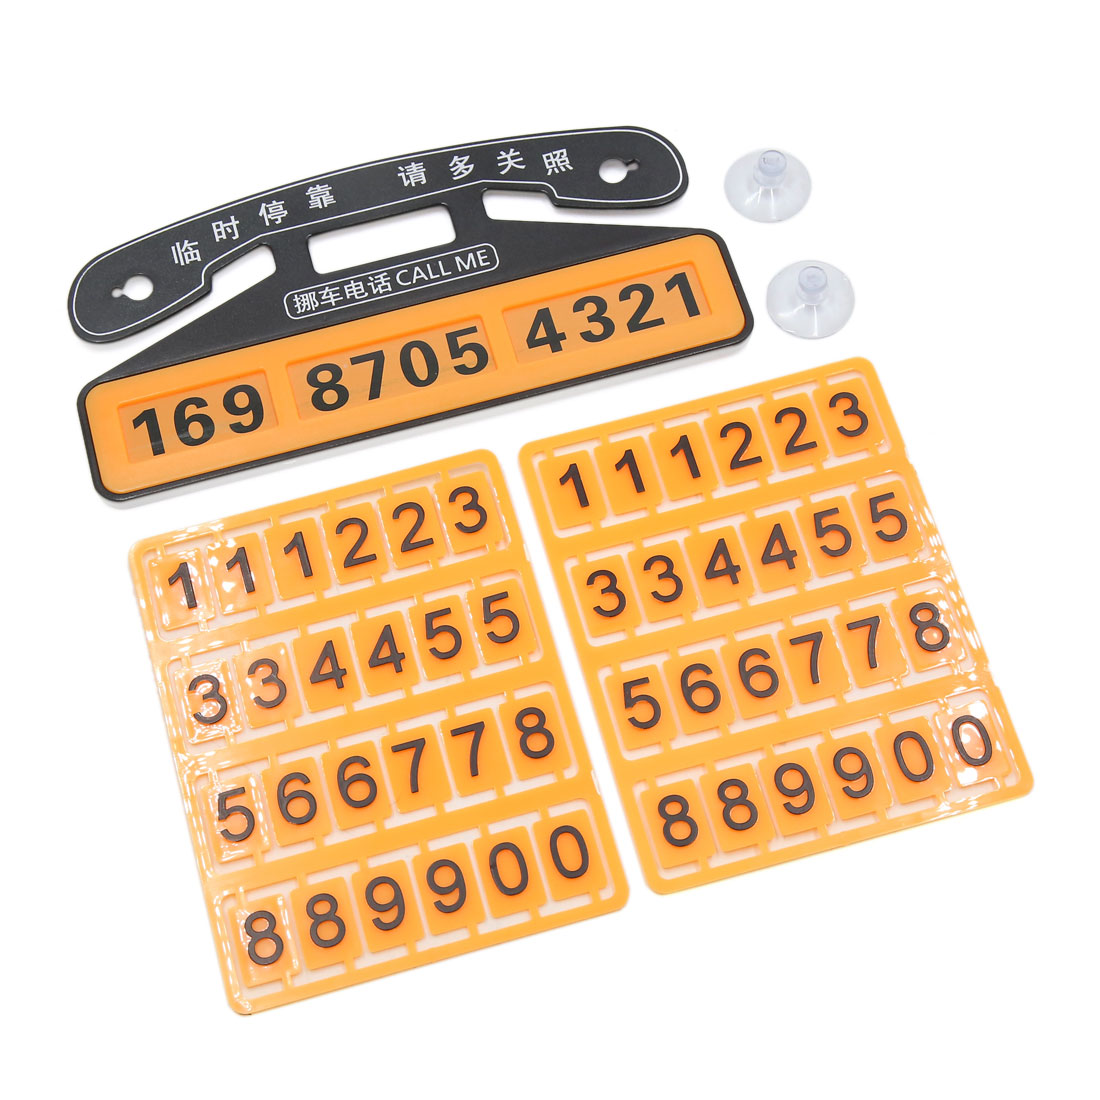 Orange Plastic Puzzle Suction-Cup Parking Notification Phone Number Card for Car